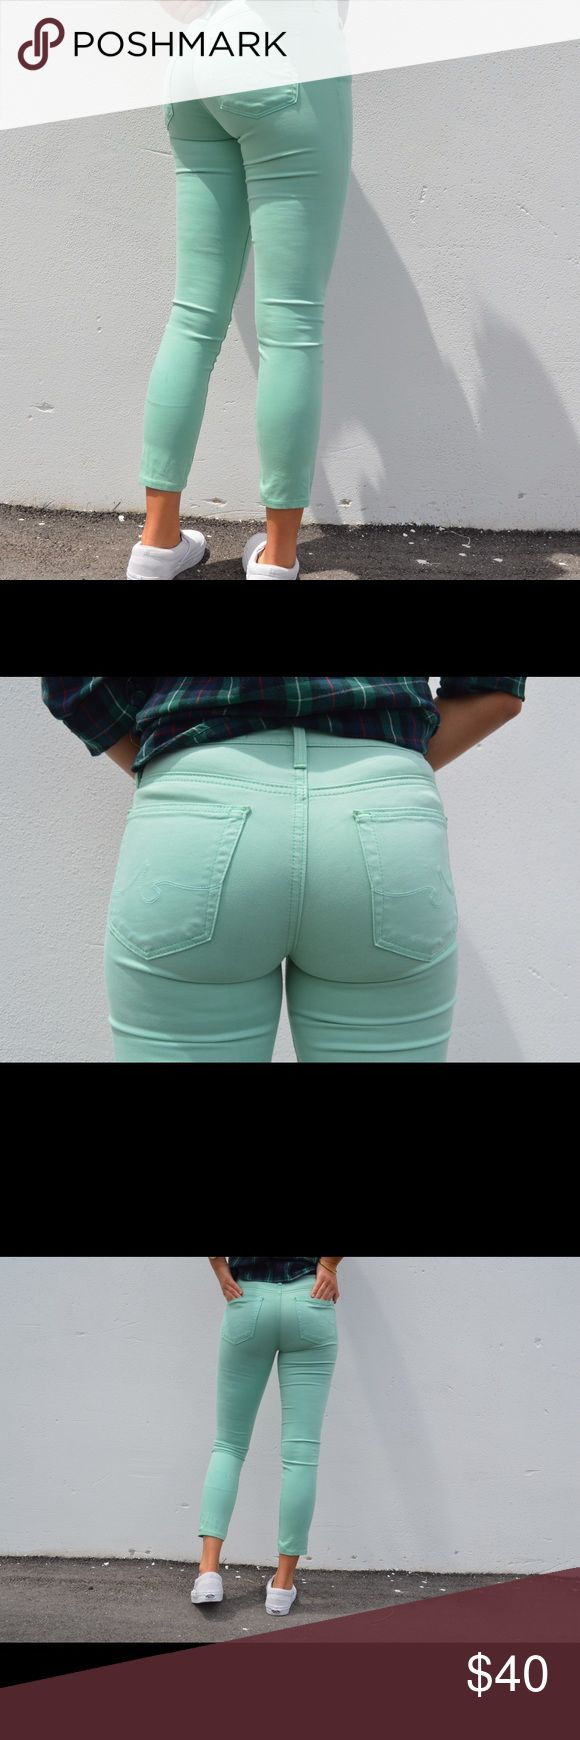 Adriano Goldschmied Jeans Hi all! I'm selling these pre-loved AG mint green jeans! They are a size 24, and they look super adorable on (as seen in the photos). Message me if you're interested or need additional info! Happy shopping, friends 😇 Ag Adriano Goldschmied Jeans Skinny